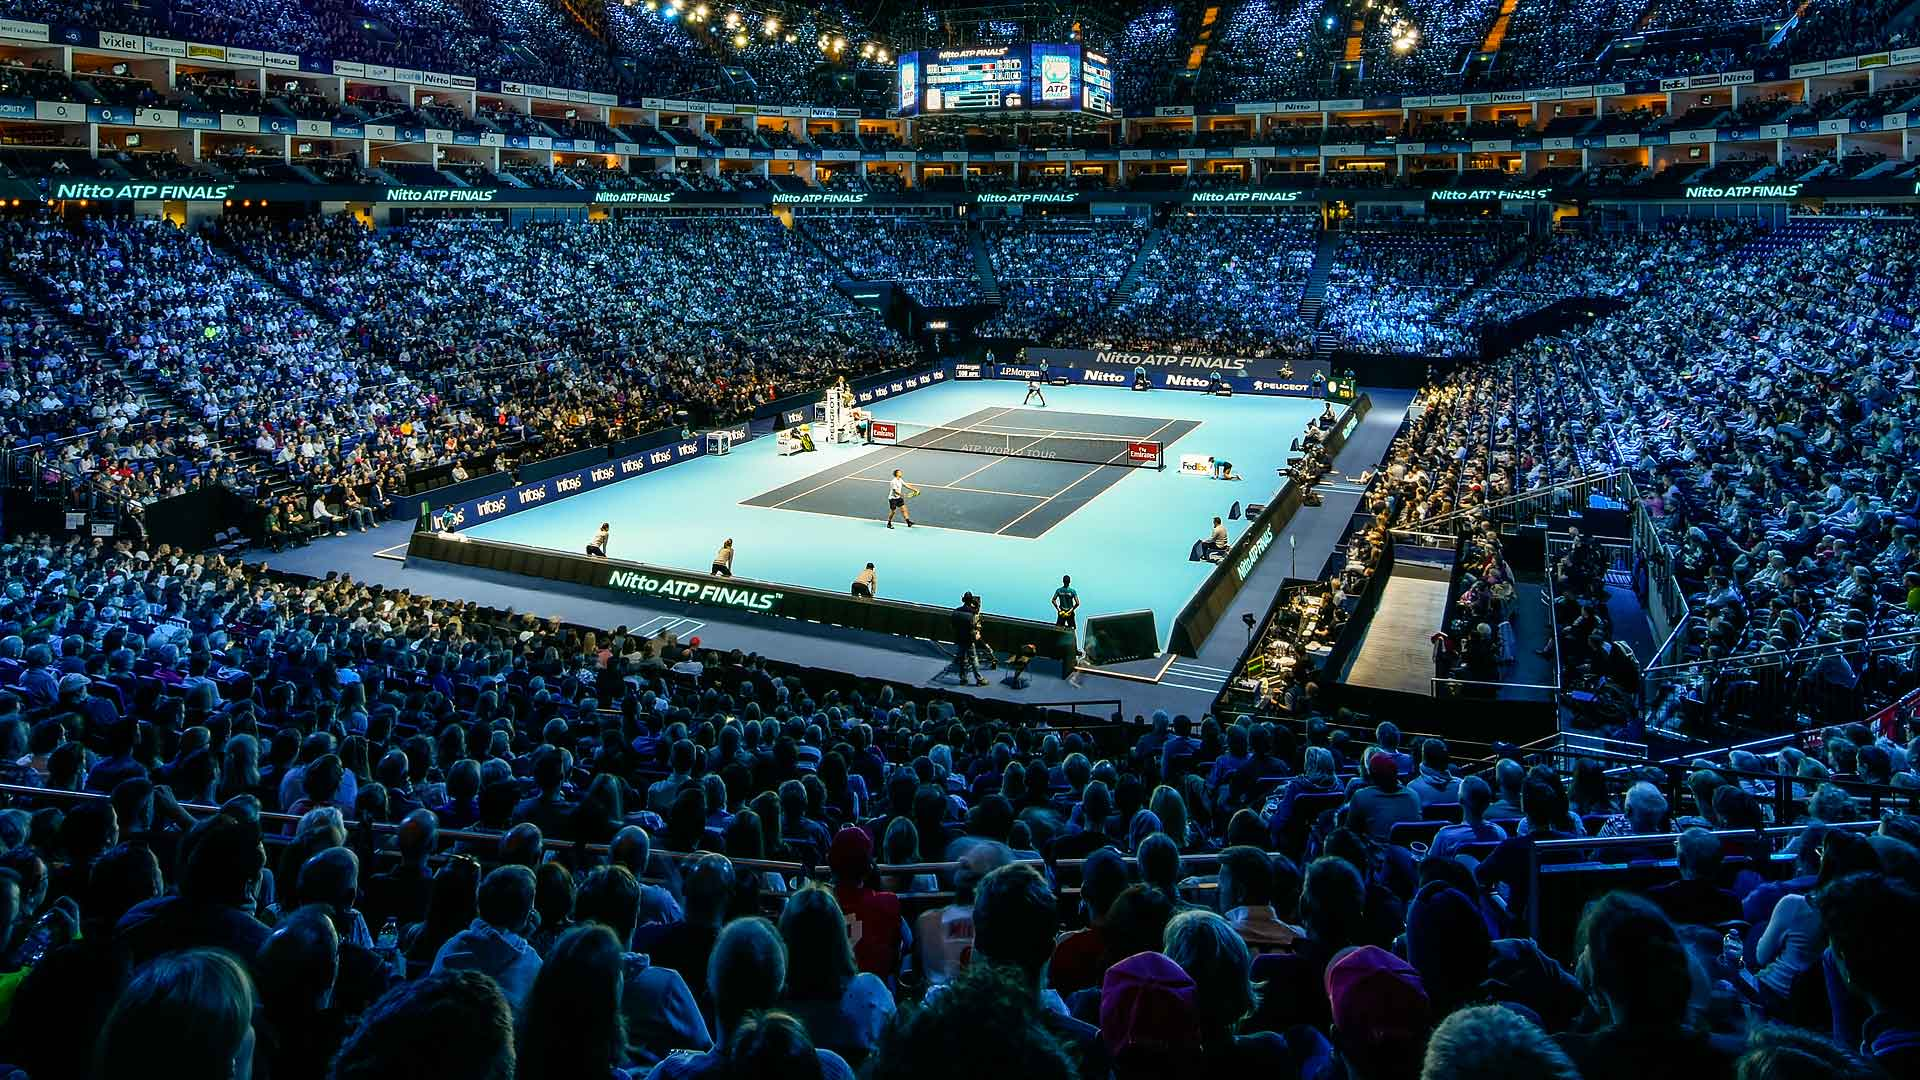 Atp Calendario 2020.Atp Announces 2019 Atp World Tour Calendar Atp Tour Tennis